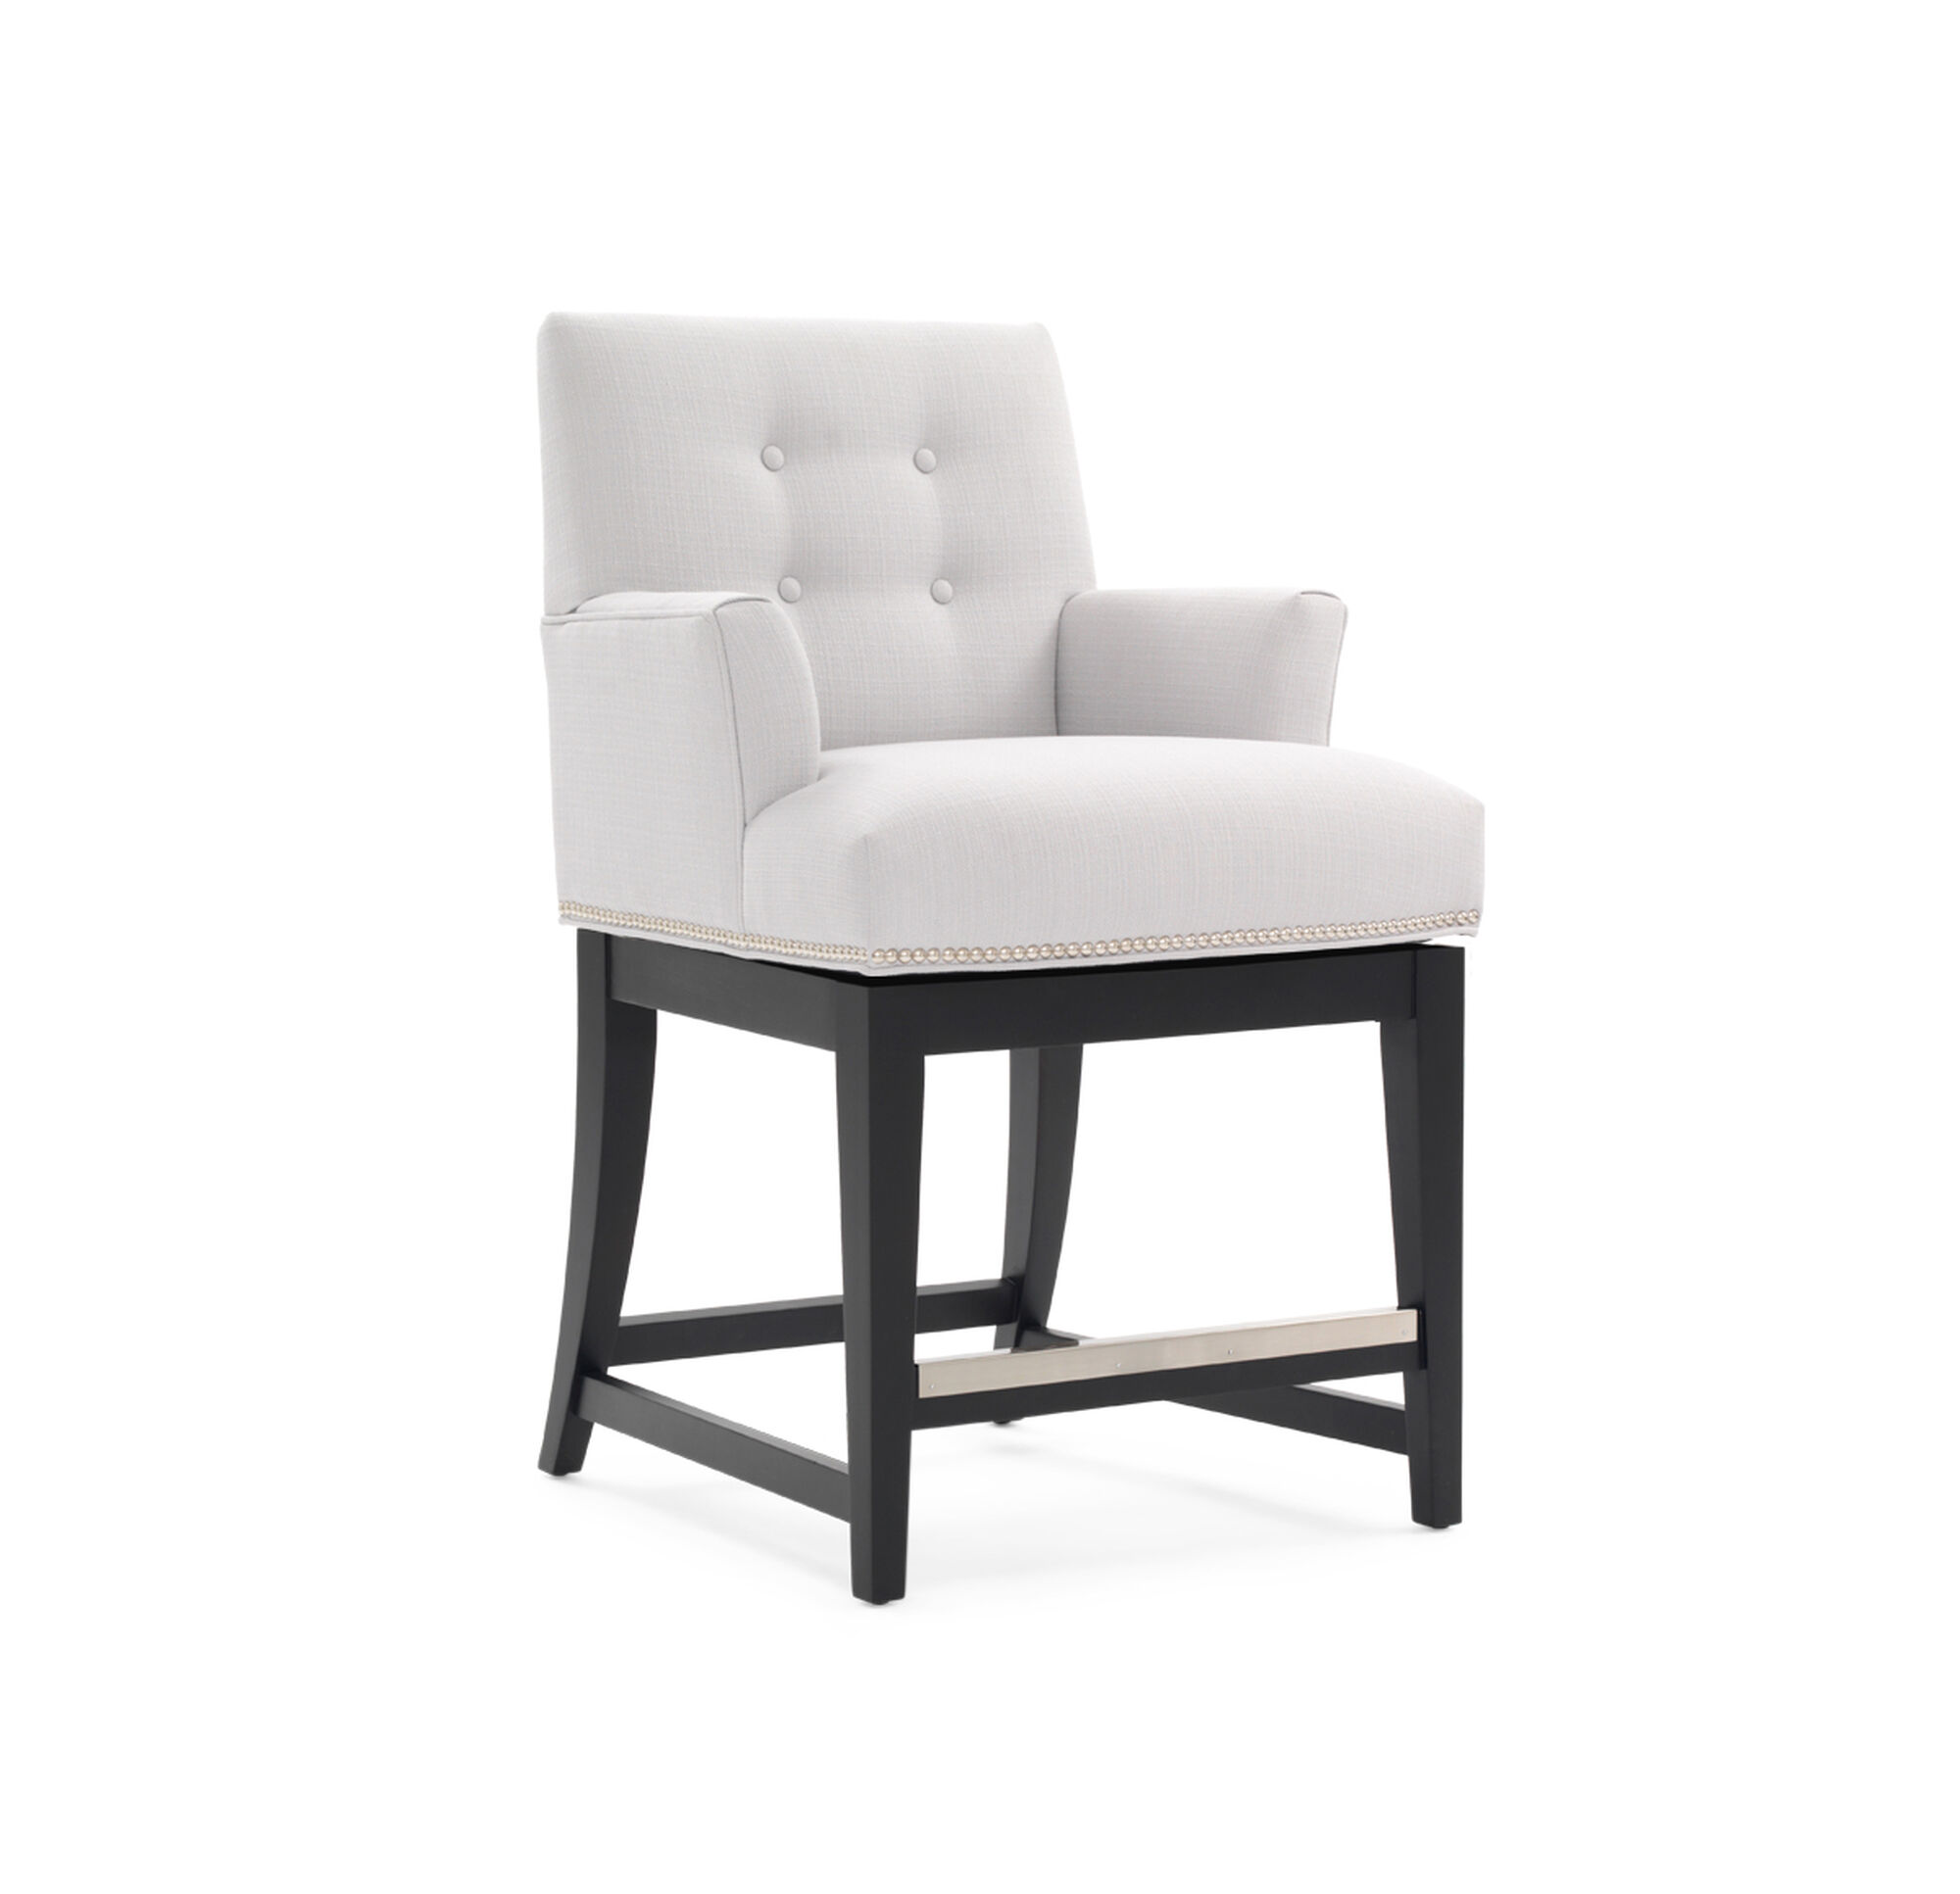 Oliver Return Swivel Counter Stool With Arms